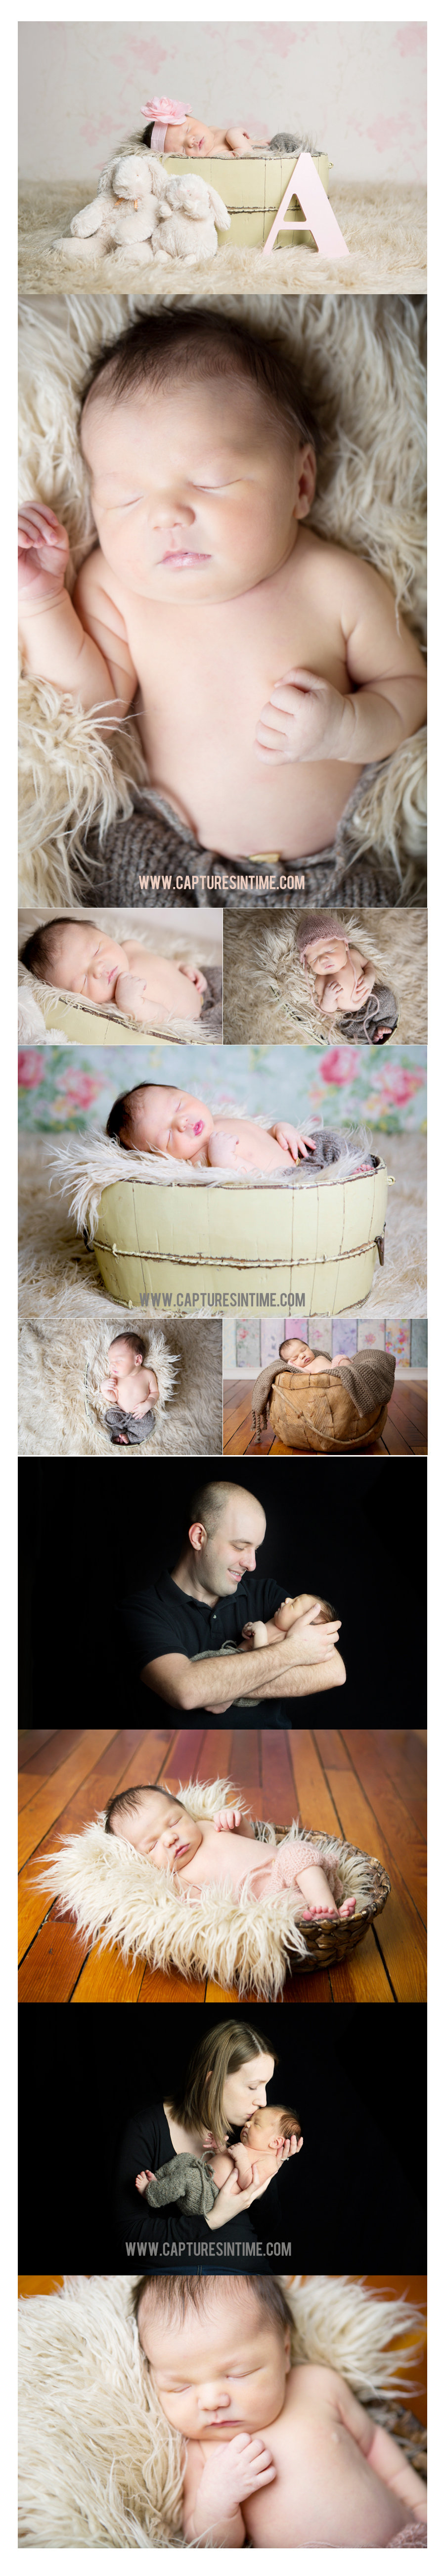 kansas-city-newborn-portait-session